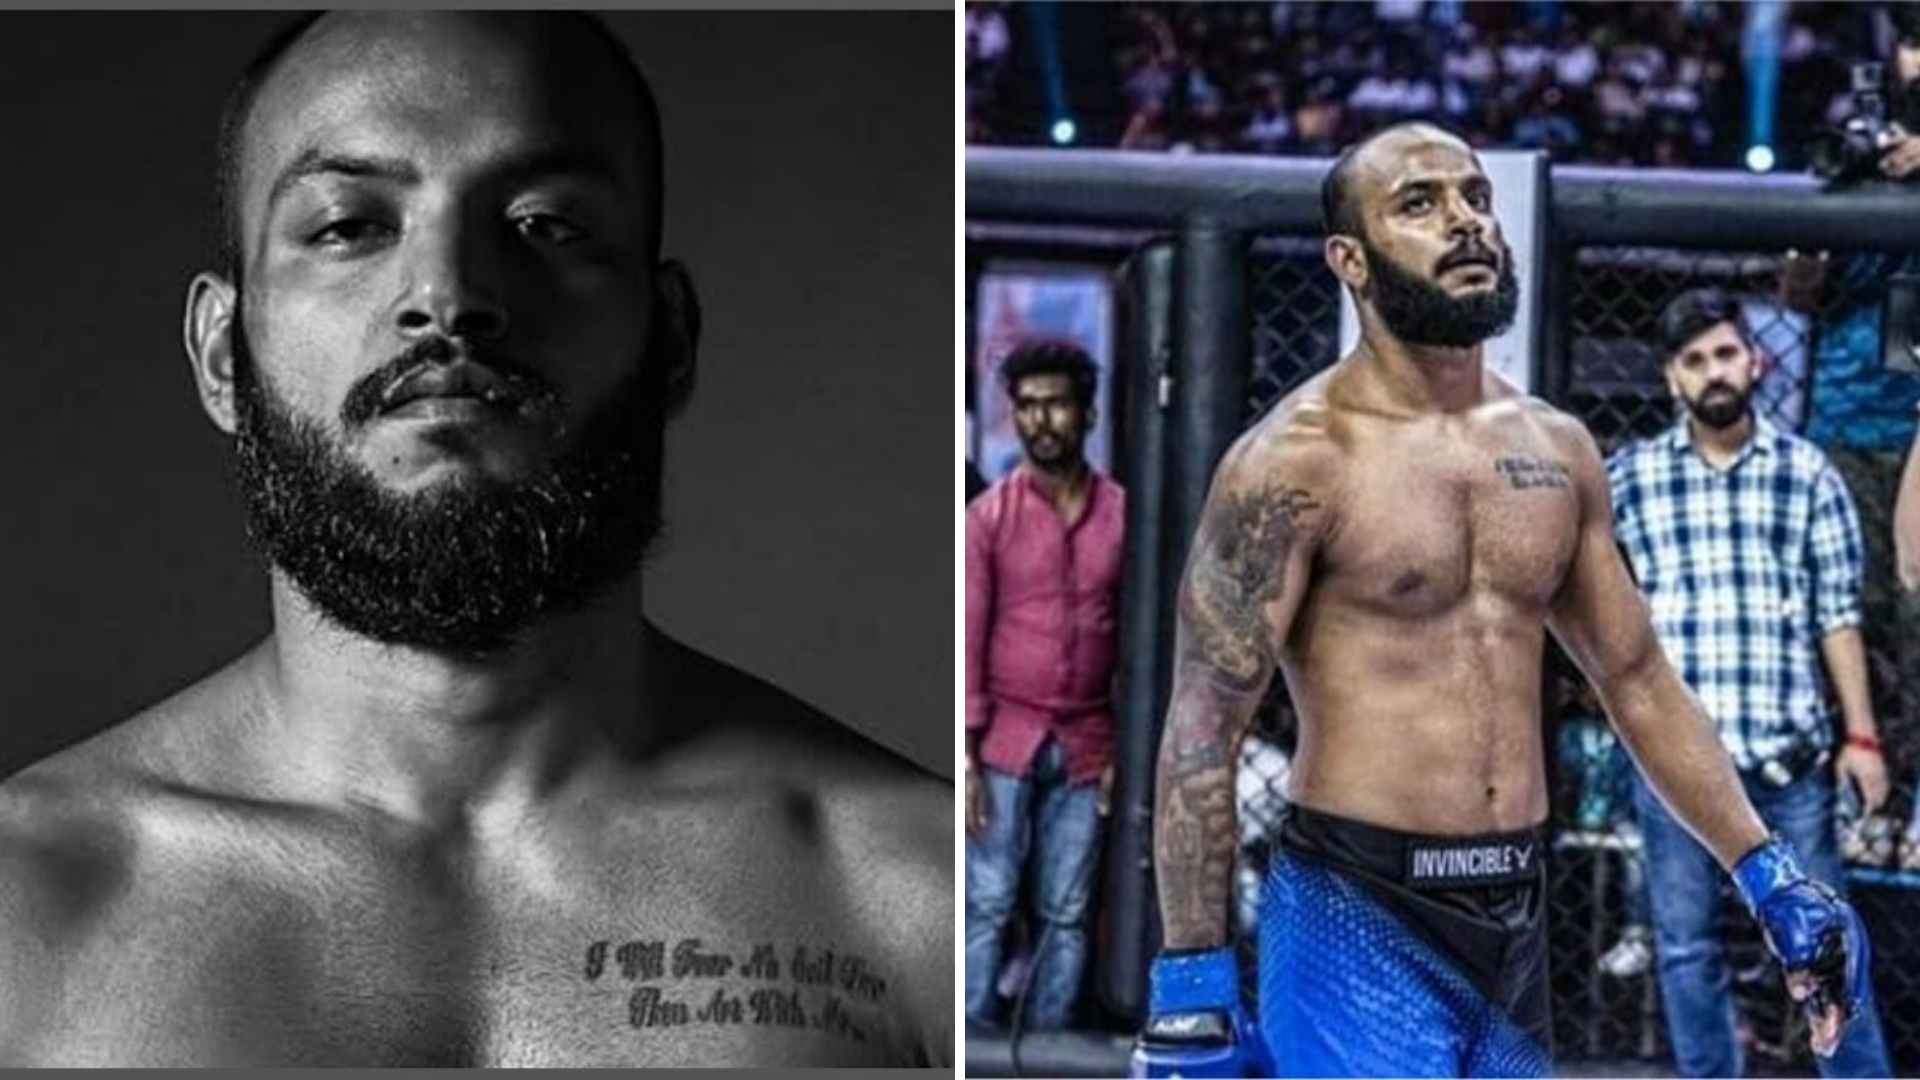 MMA India Exclusive: Srikant Sekhar: I would really like to fight Anshul Jubli! - Srikant Sekhar